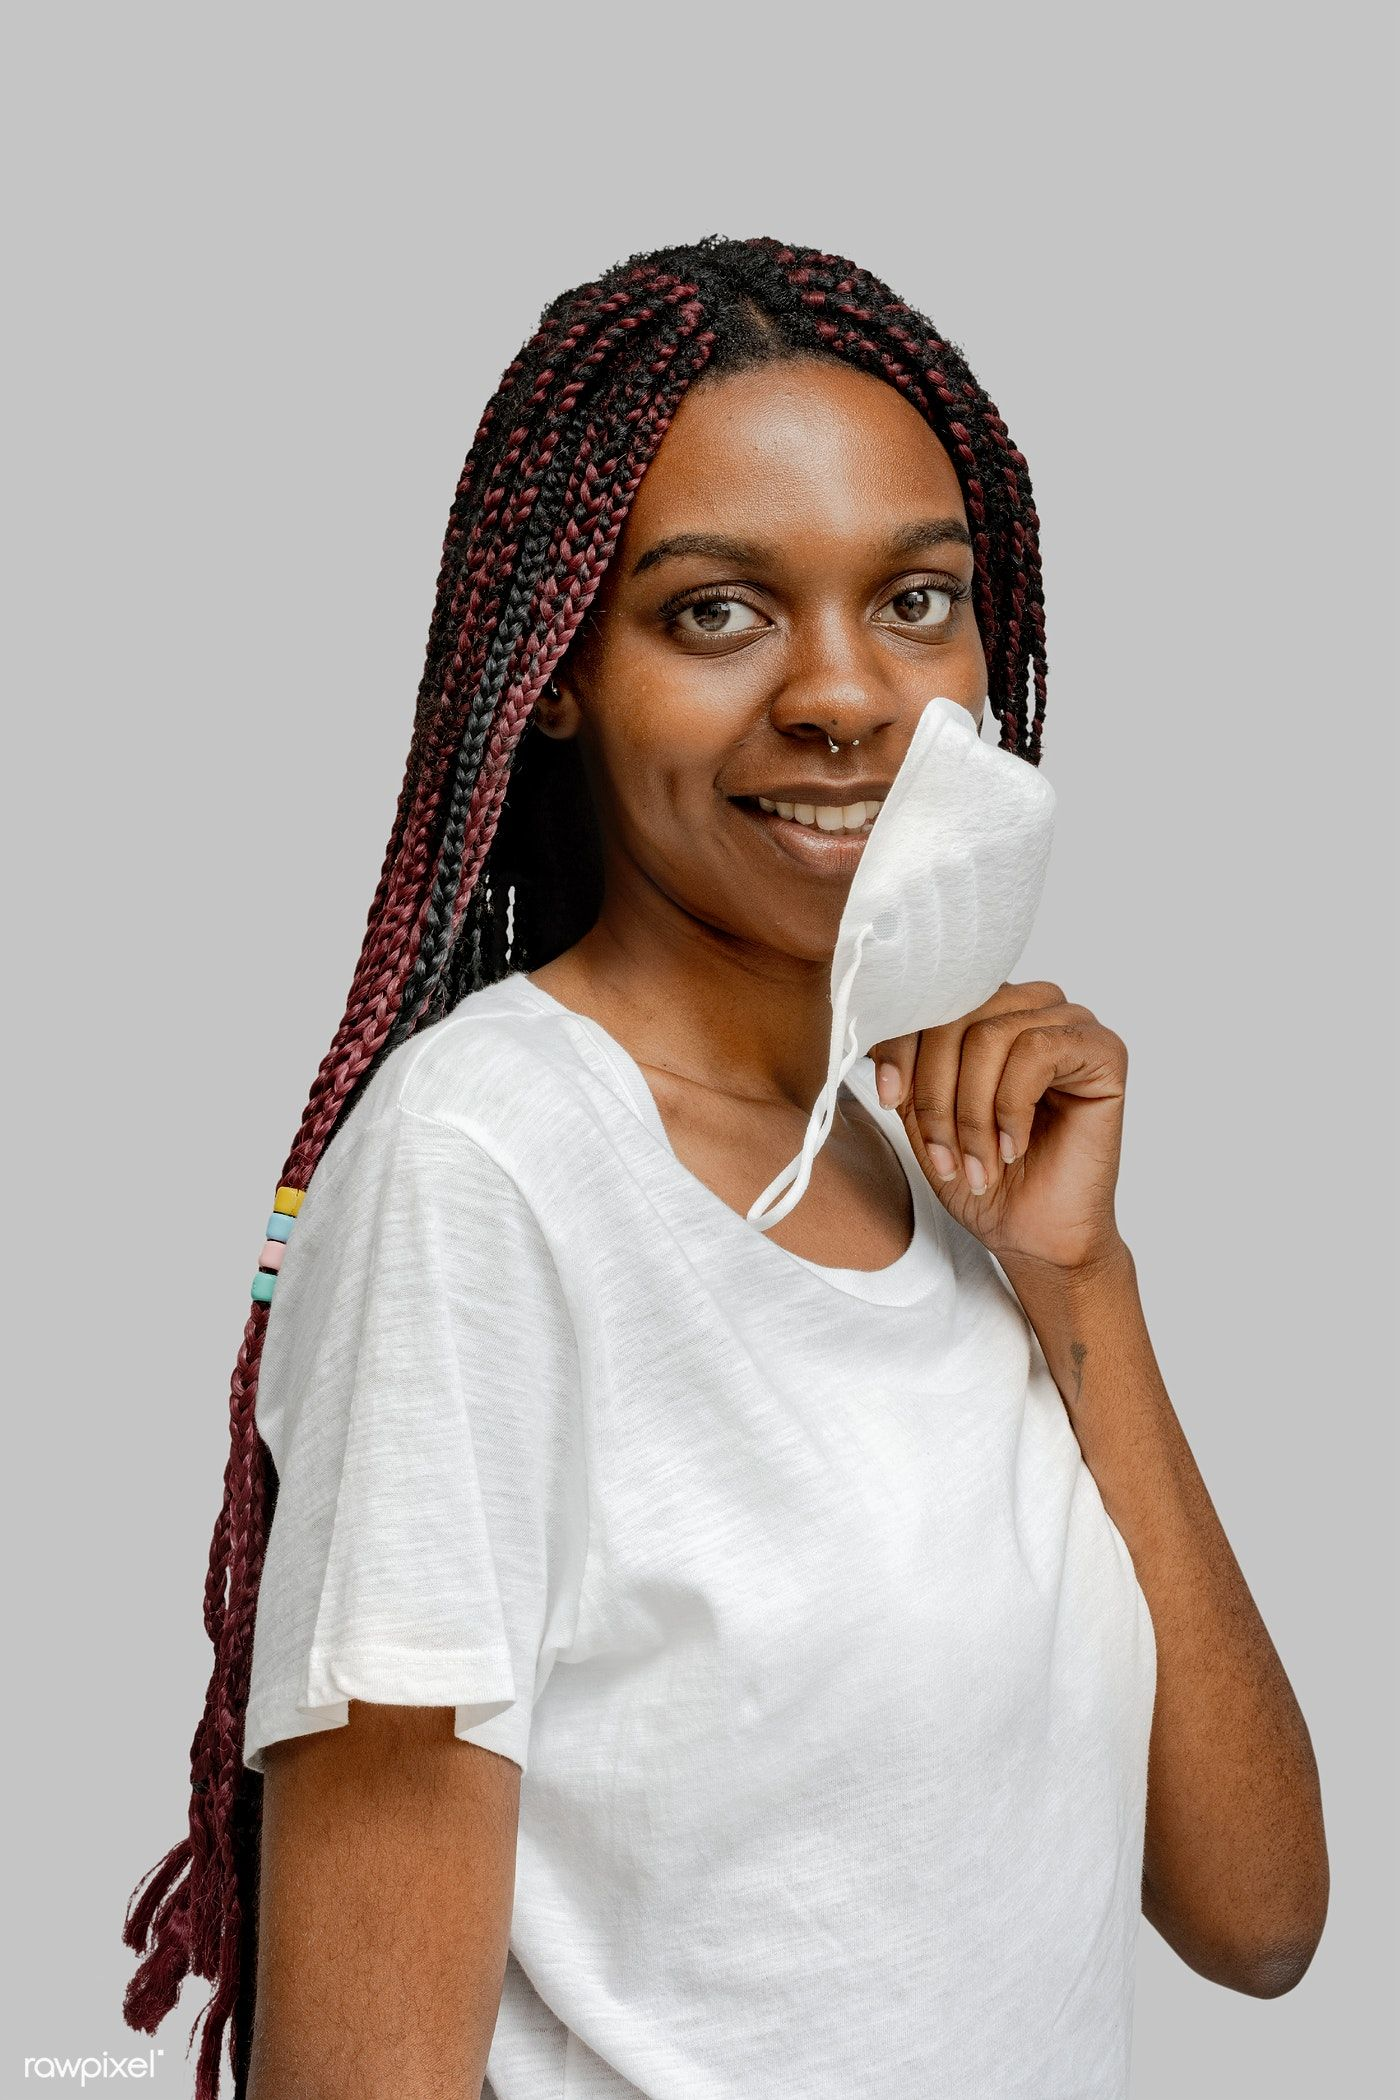 Smiling Black Woman Wearing A Mask Transparent Png Premium Image By Rawpixel Com Teddy Rawpixel